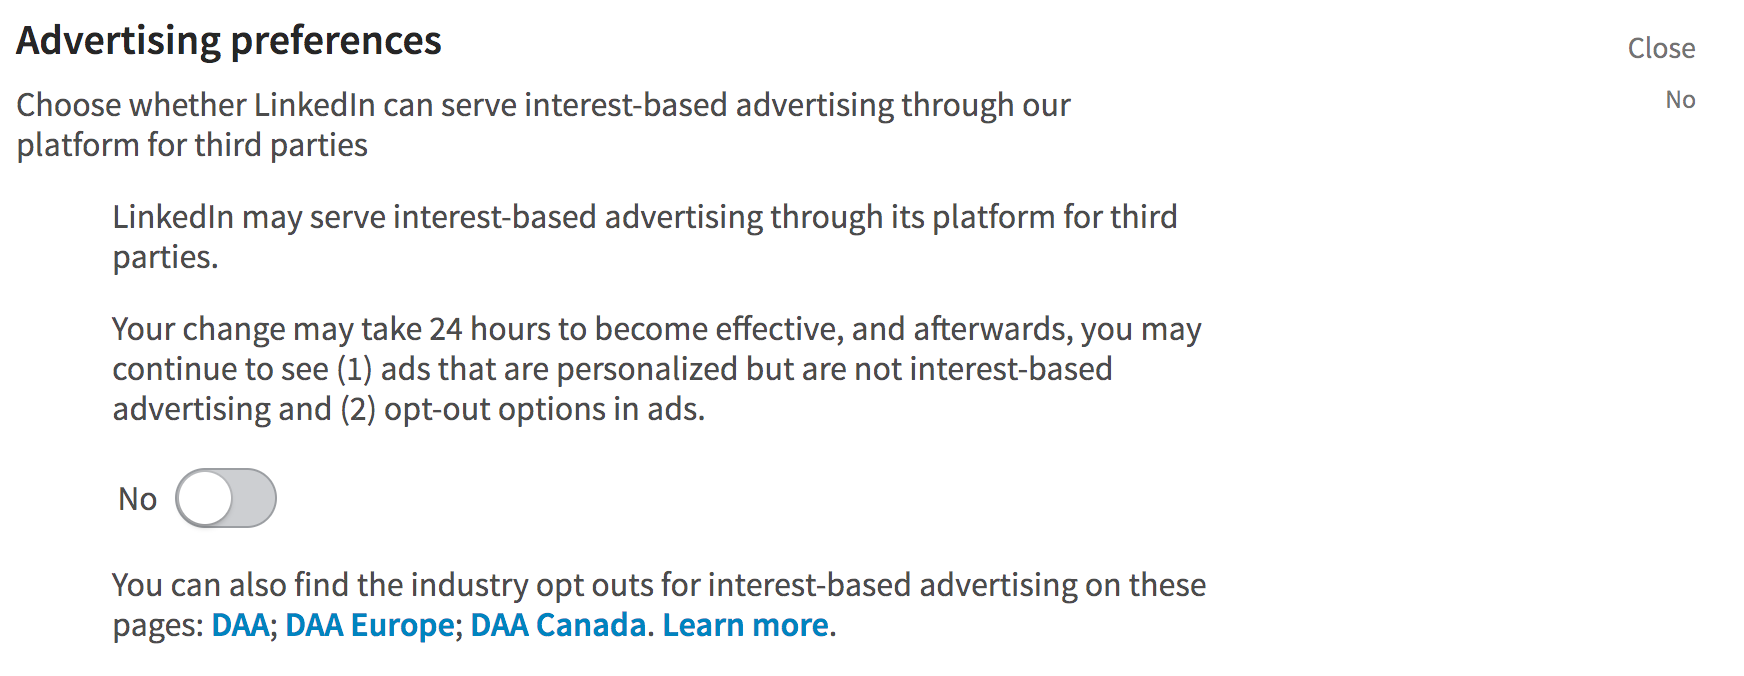 linkedin advertising privacy settings - third party ad tracking